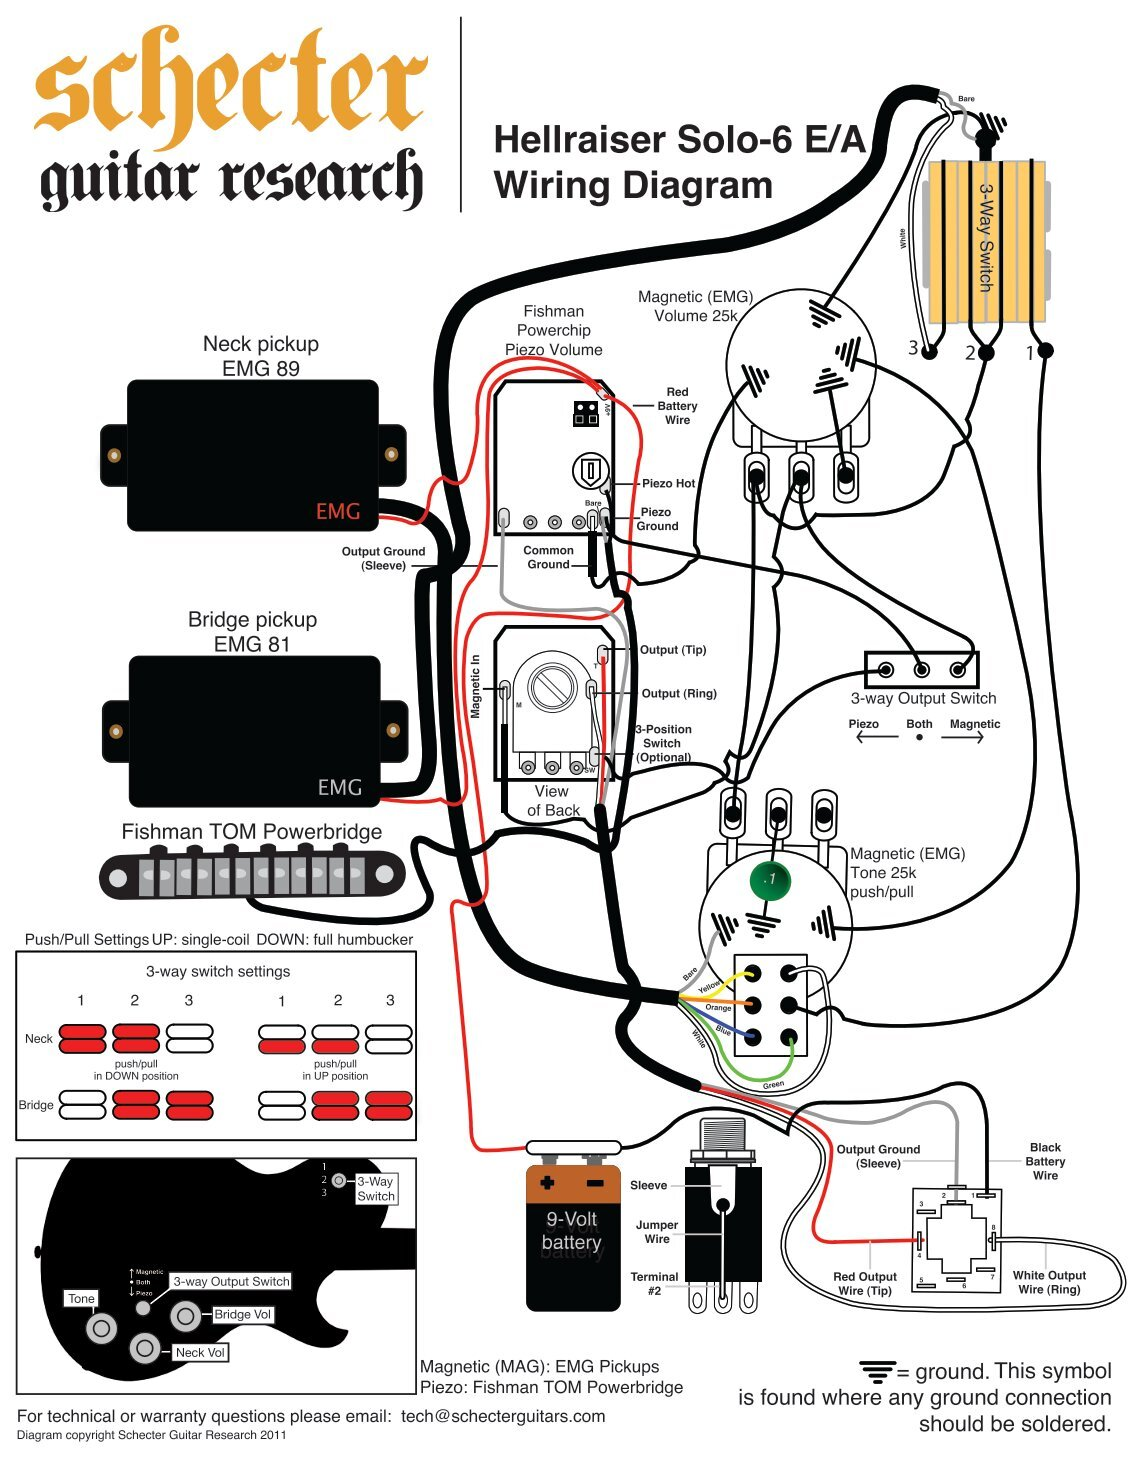 hellraiser solo 6 wiring diagram schecter guitars?quality\\\\\\\\\\\\\\\\\\\\\\\\\\\\\\\=85 emg hz wiring diagram color emg hz passive wiring diagram \u2022 205 ufc co emg pickups wiring diagram at gsmx.co